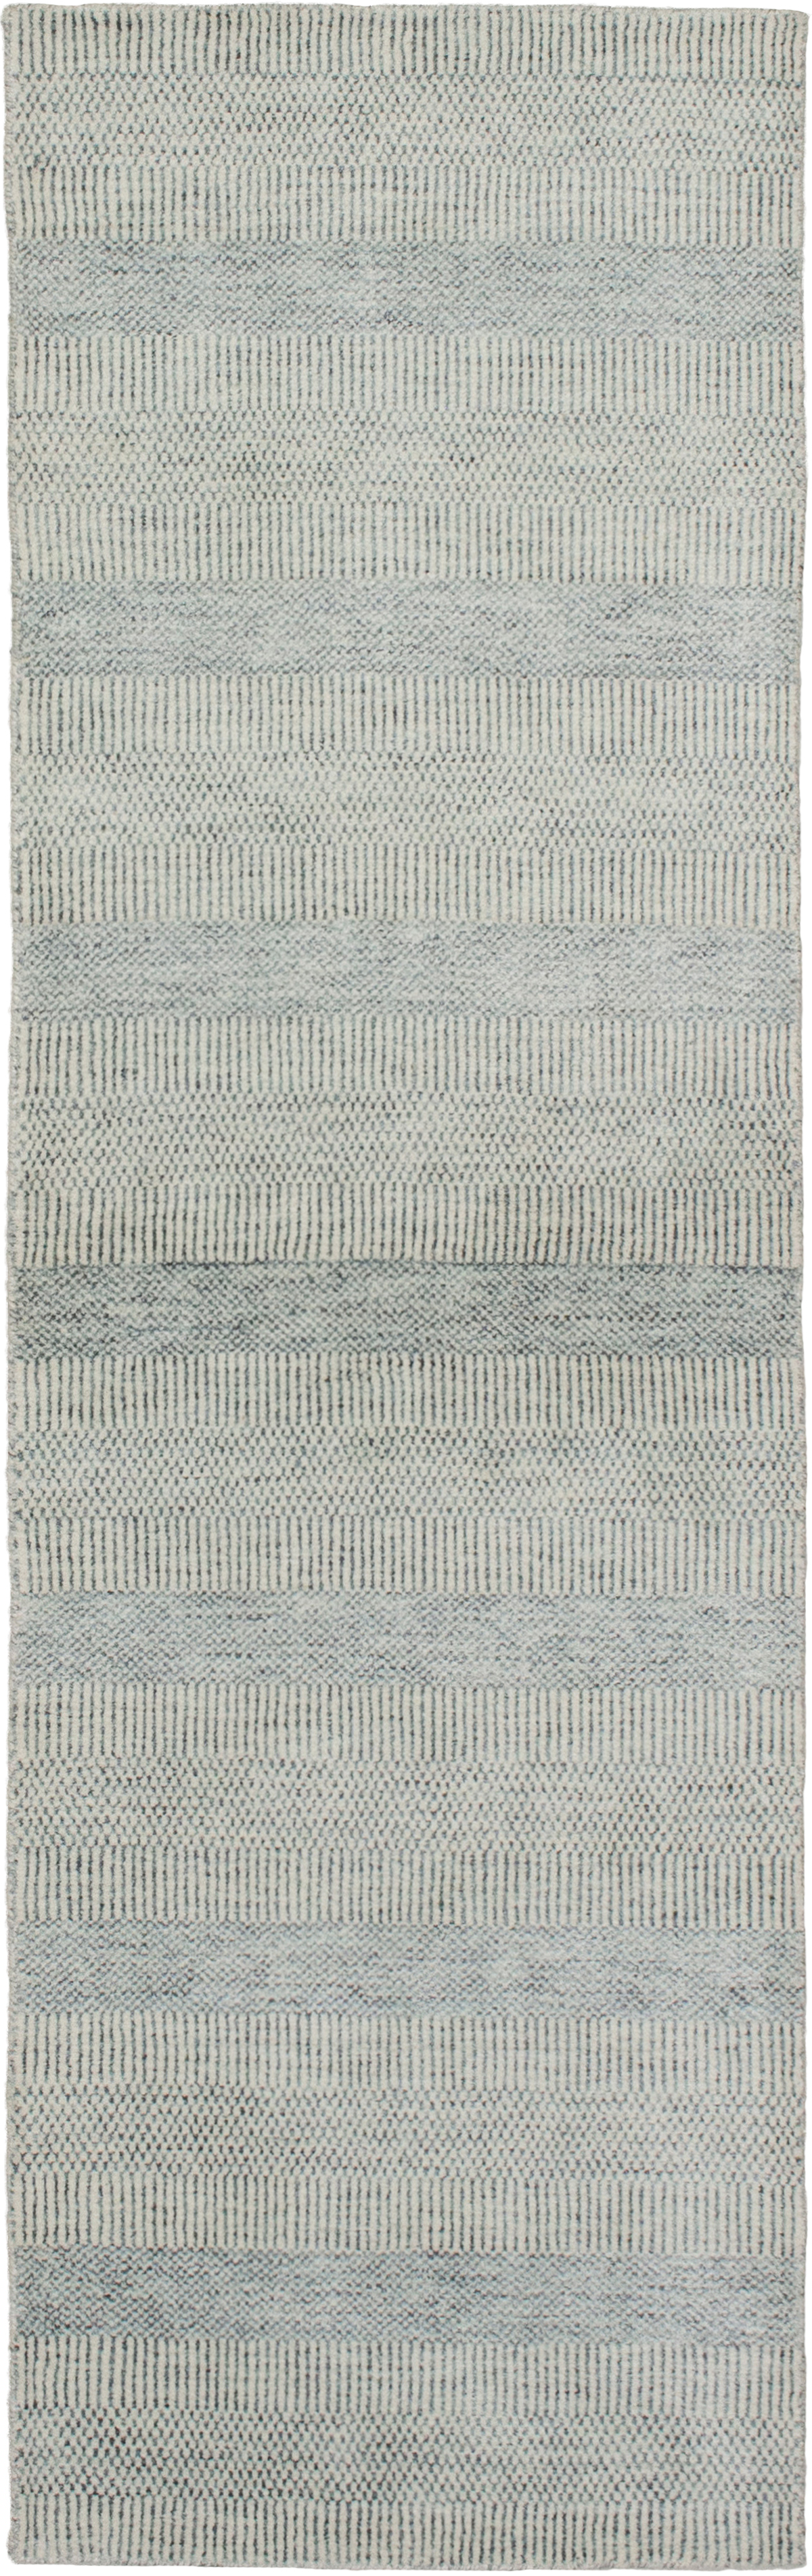 """Hand-knotted Pearl Cream, Grey  Rug 2'5"""" x 8'4"""" Size: 2'5"""" x 8'4"""""""